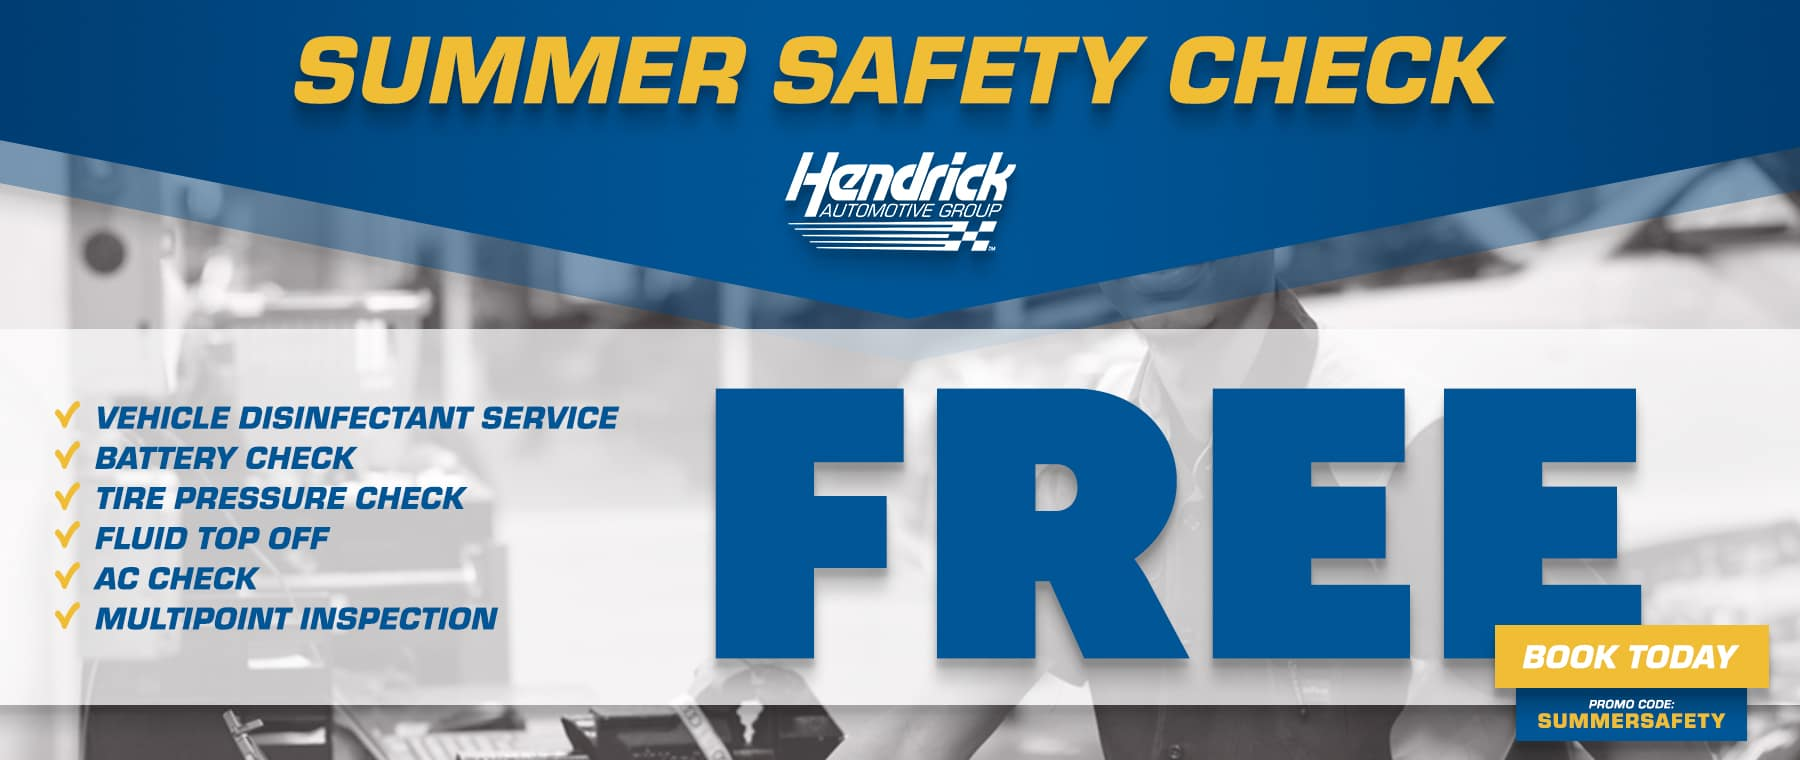 summer safety check get your vehicle serviced today!